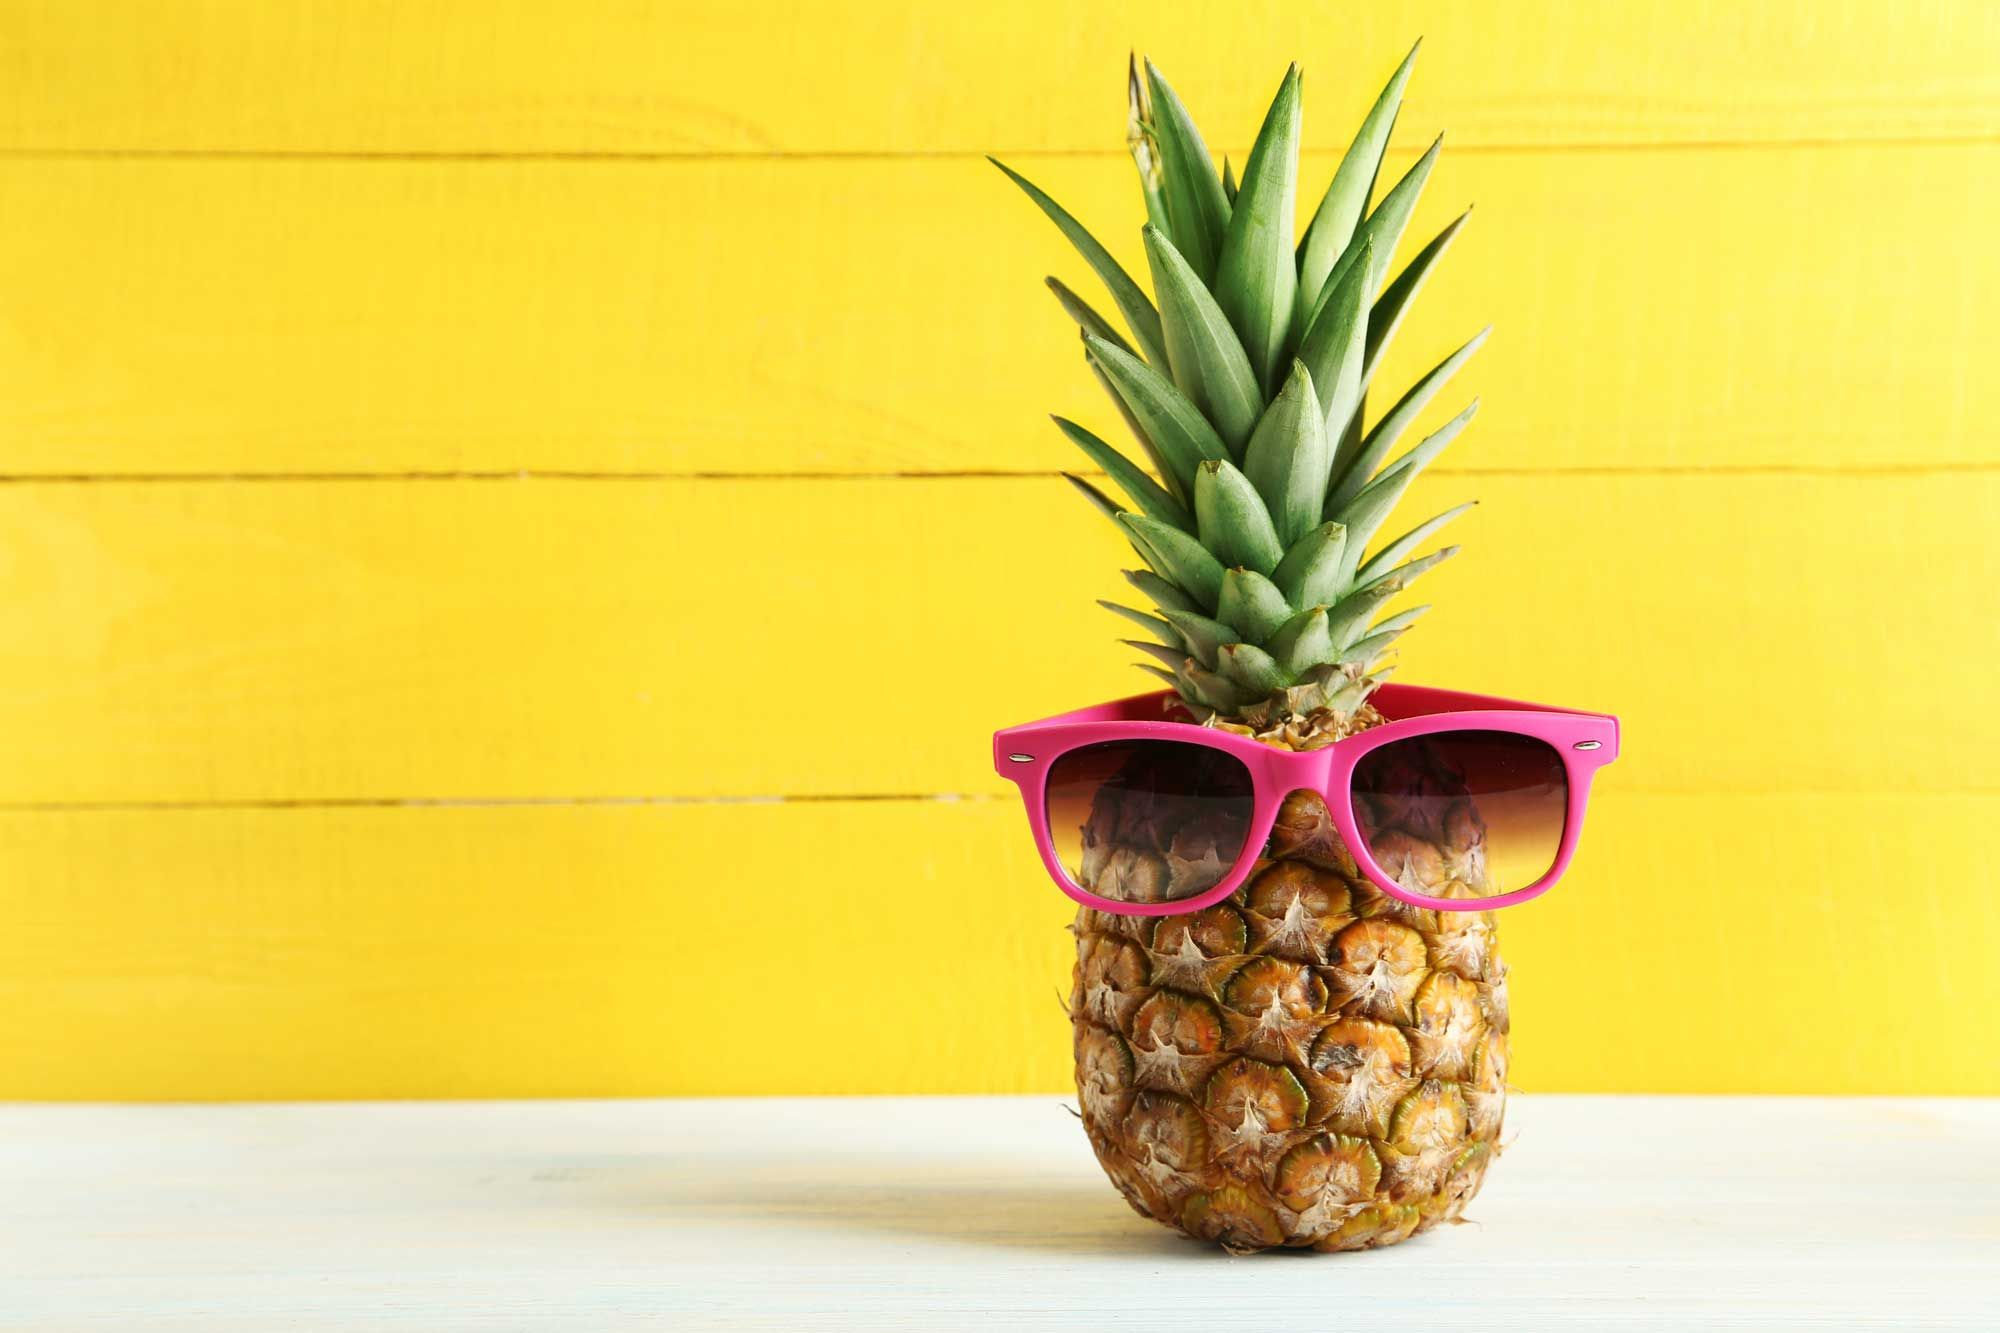 Cool Pineapple Sunglasses Wallpaper Desktop Iphone